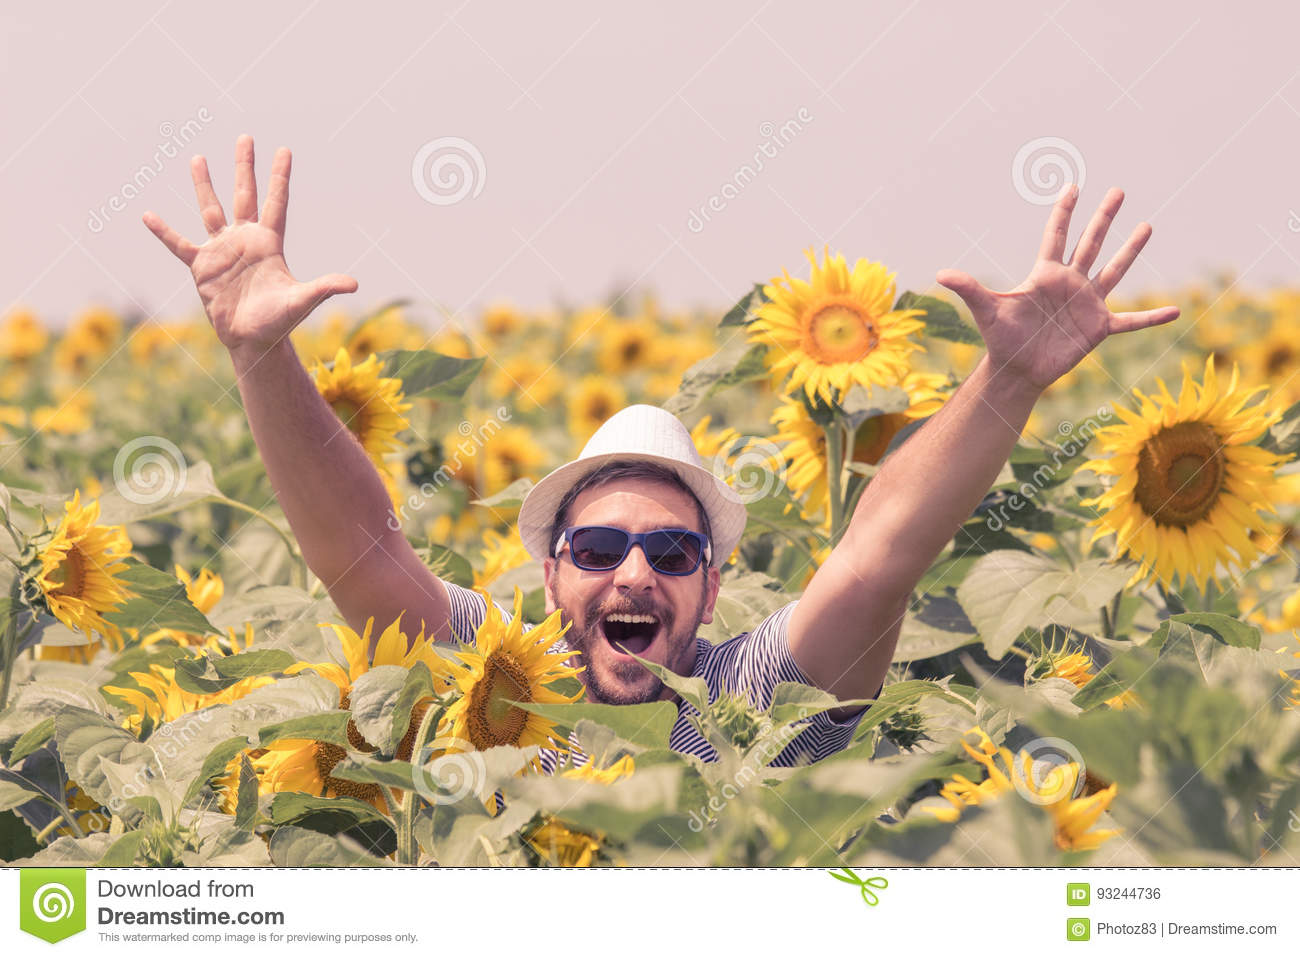 64a9fb1eb6612 Portrait of young happy man wearing hat and sunglasses with raised hands in  sunflowers field.